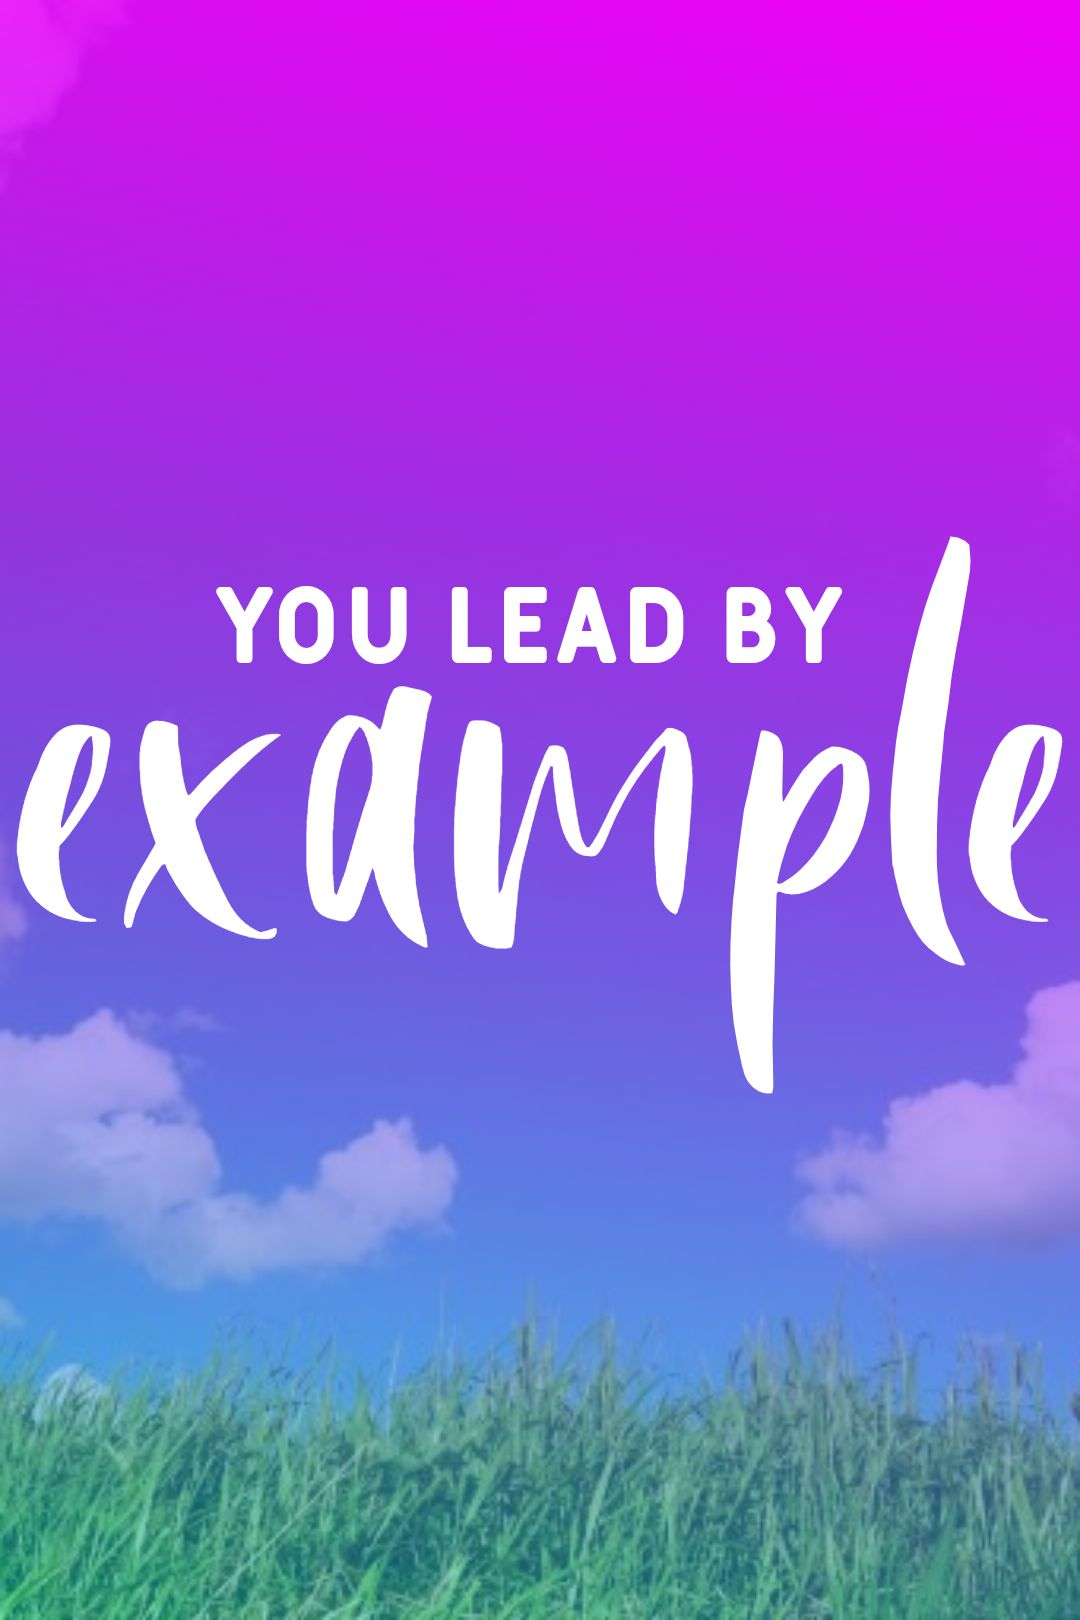 Quotes image of You lead by example